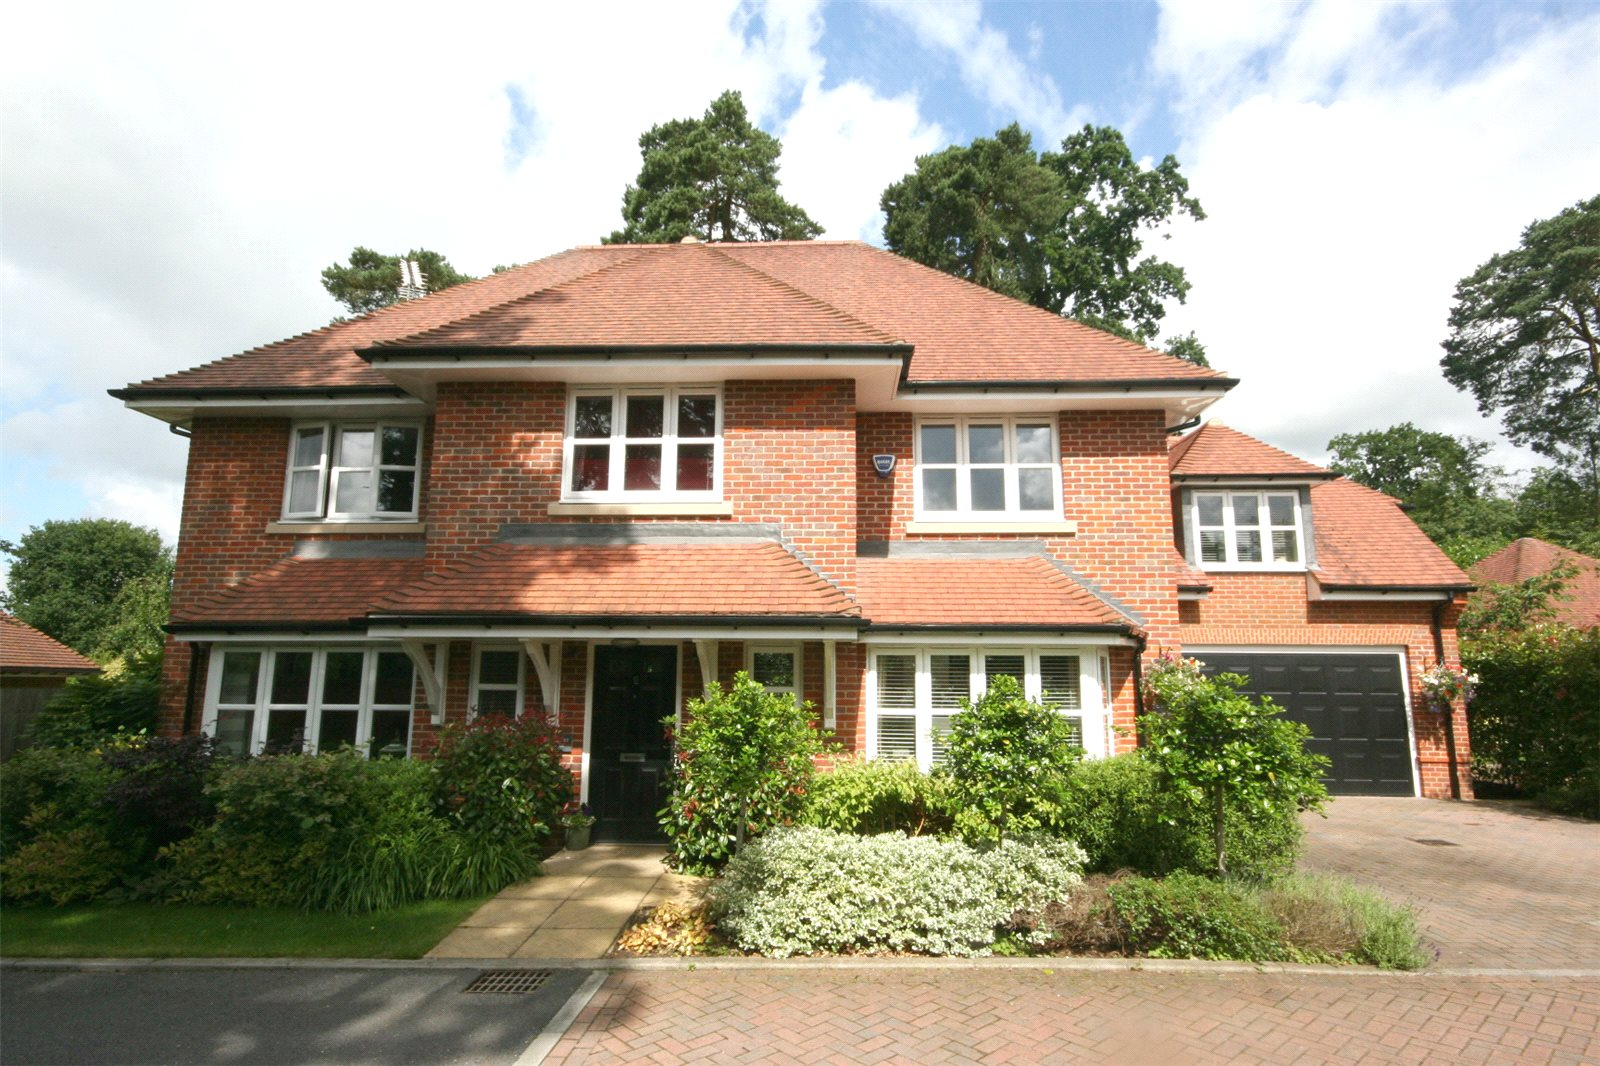 Additional photo for property listing at Ortman Close, Gerrards Cross, Buckinghamshire, SL9 Gerrards Cross, Inglaterra